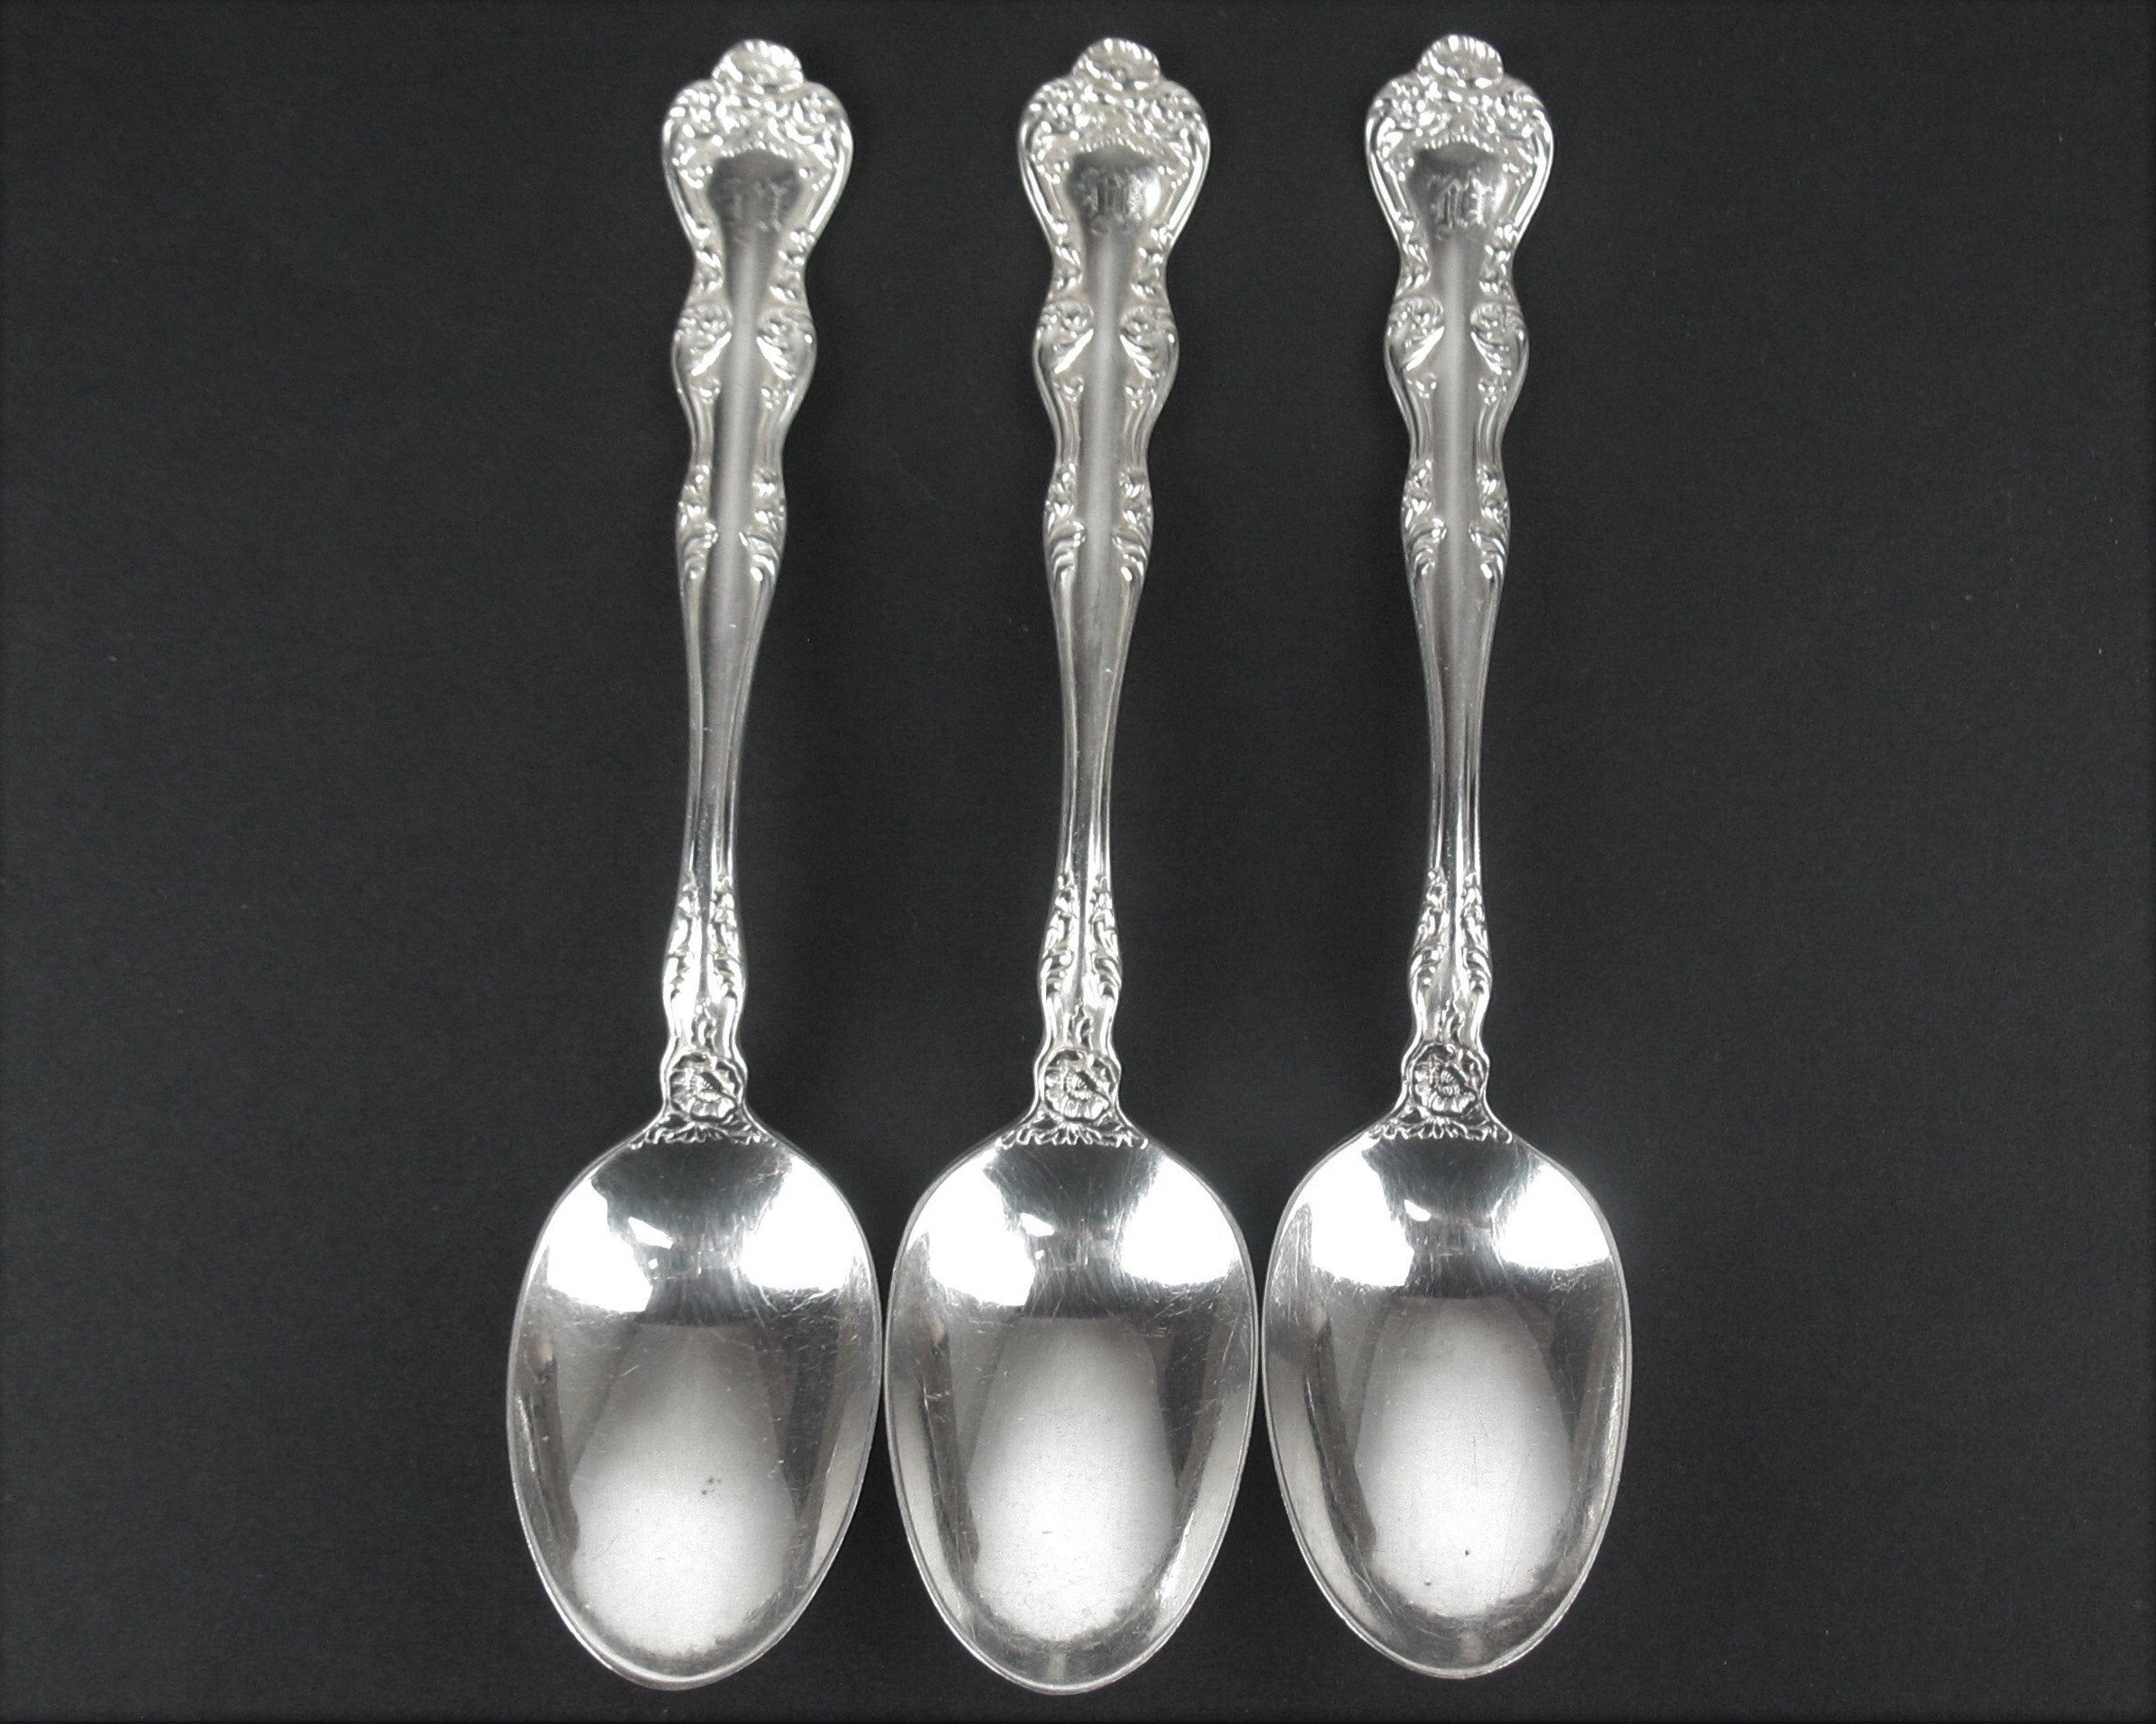 """FLORAL 6/"""" FLAT HANDLE BUTTER SPREADER S by Wallace Silverplate 1902"""